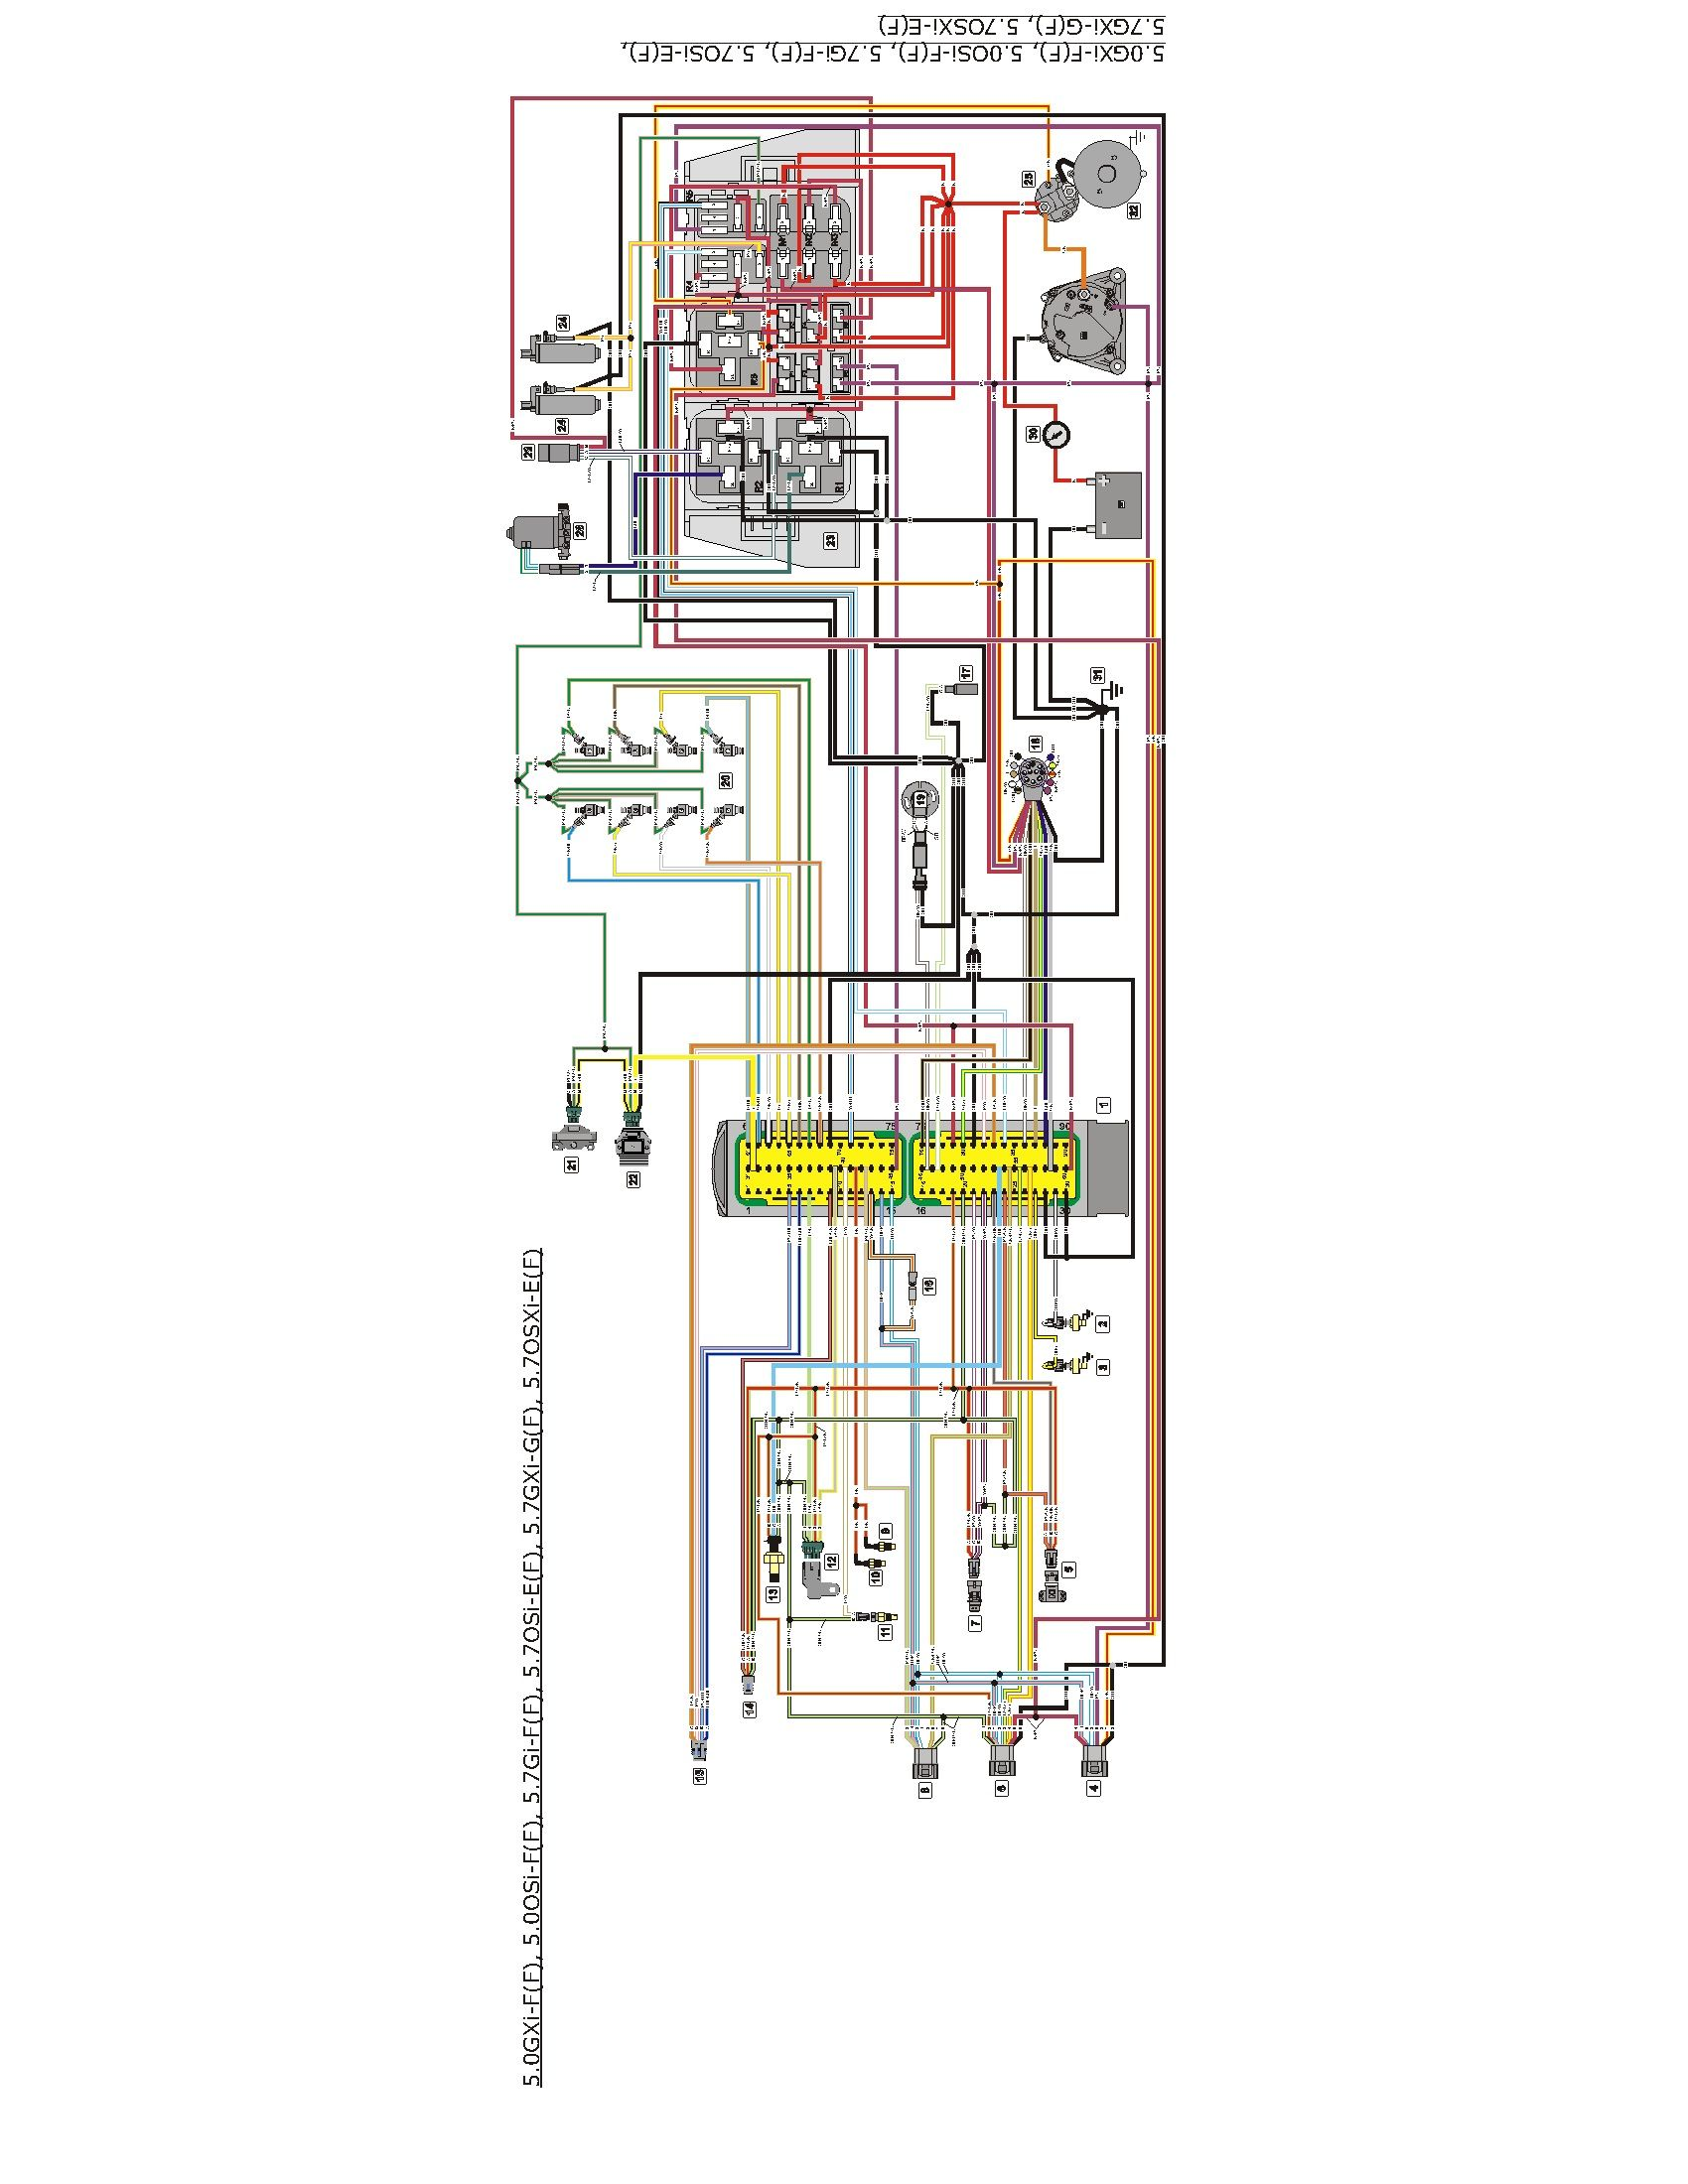 38e0106861e0fe47e508530985b32839 volvo penta 5 7 engine wiring diagram yate pinterest volvo volvo engine wiring harness replacement at n-0.co